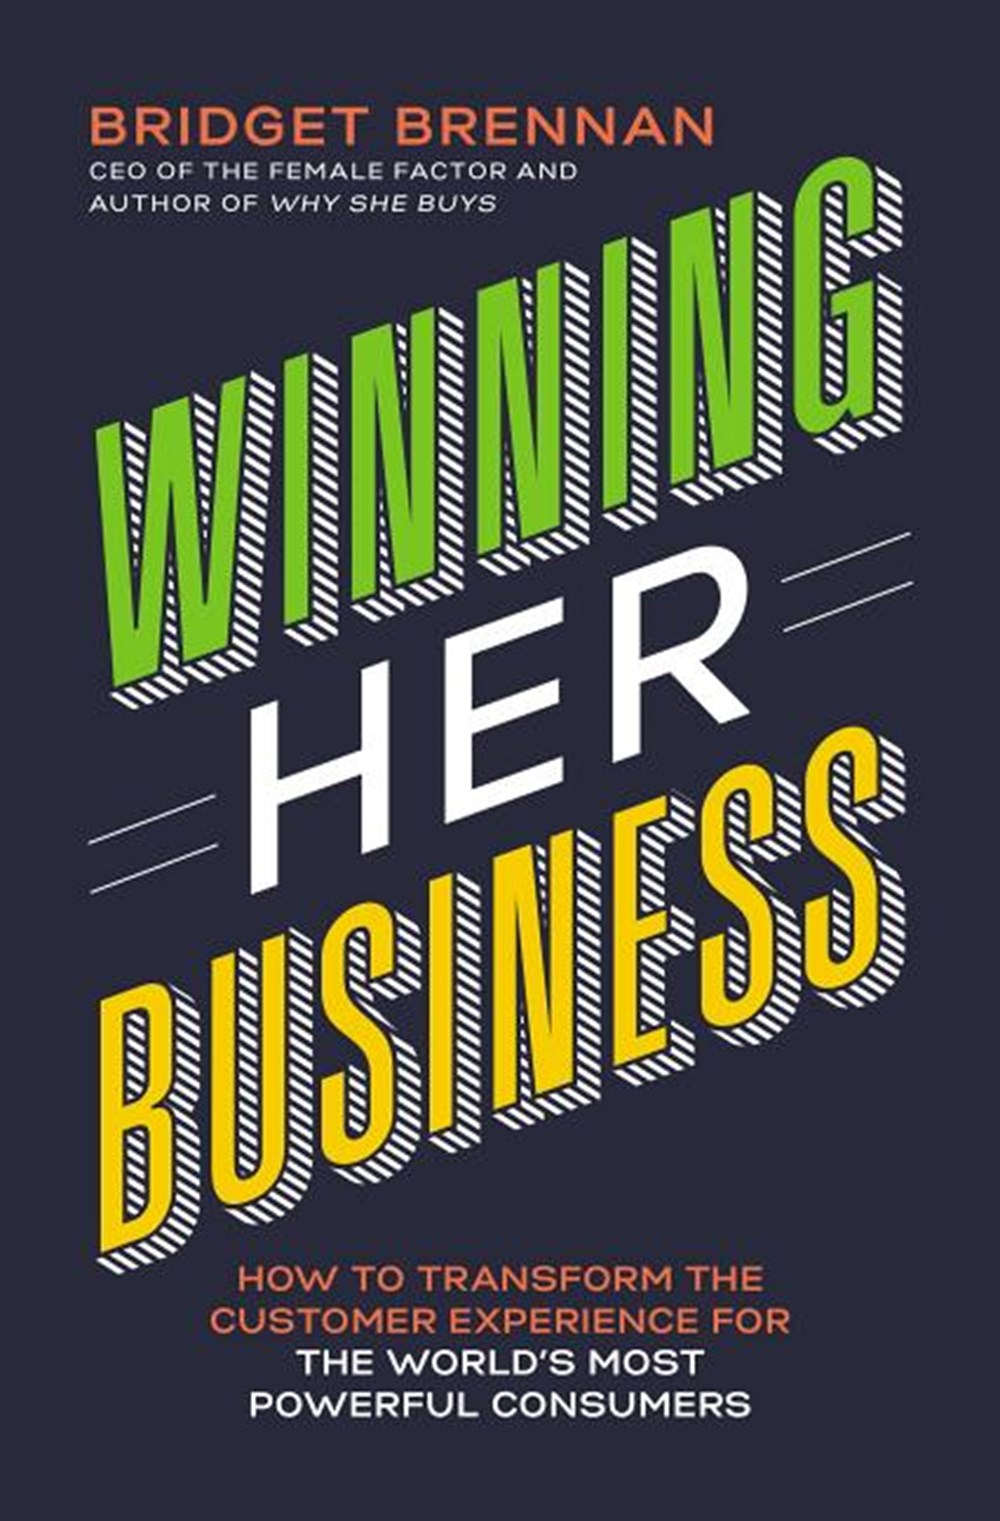 Winning Her Business How to Transform the Customer Experience for the World's Most Powerful Consumer